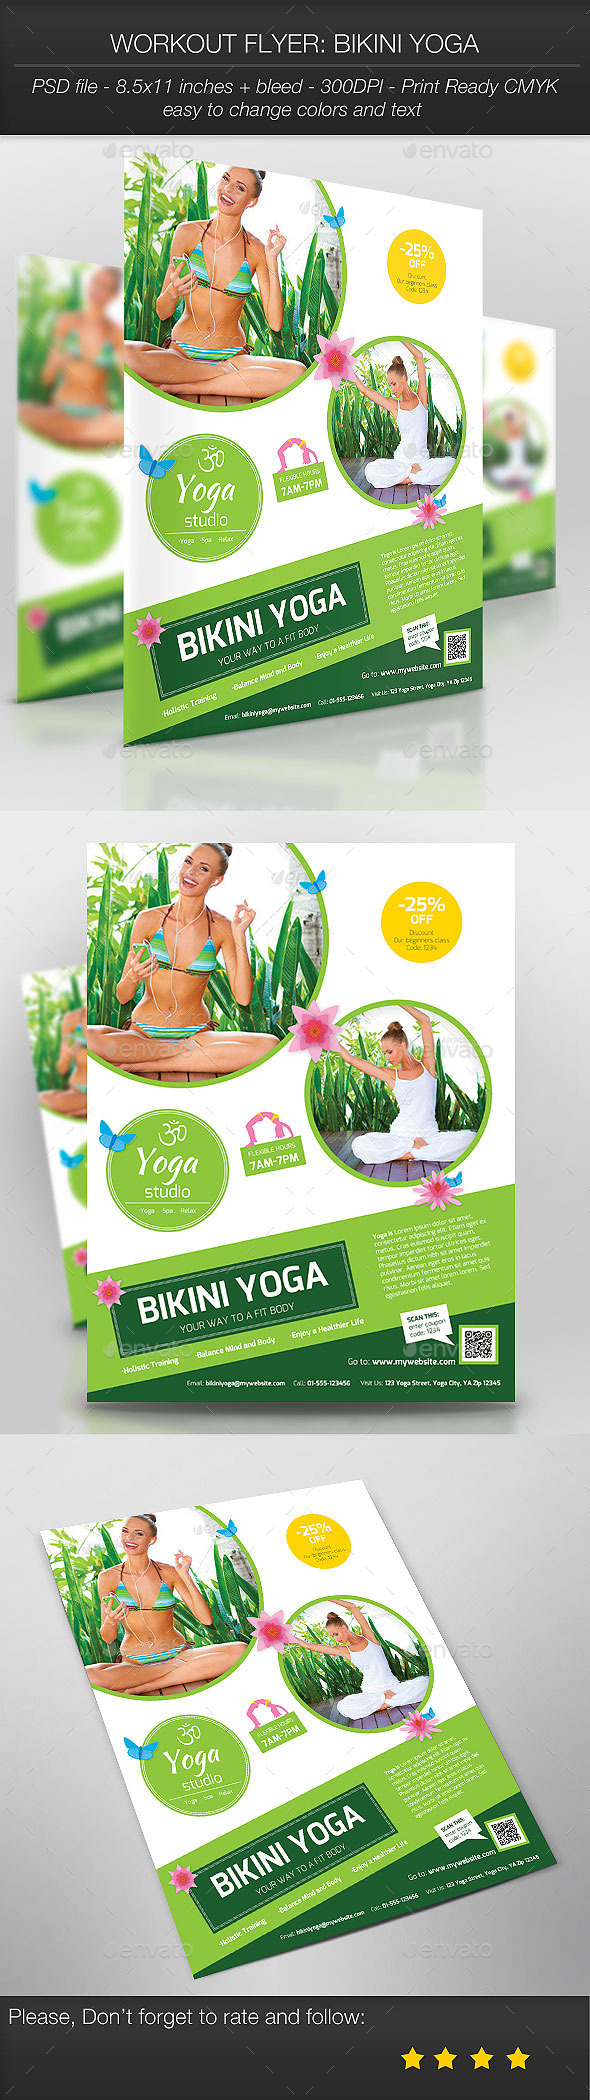 Workout Flyer: Bikini Yoga - Sports Events